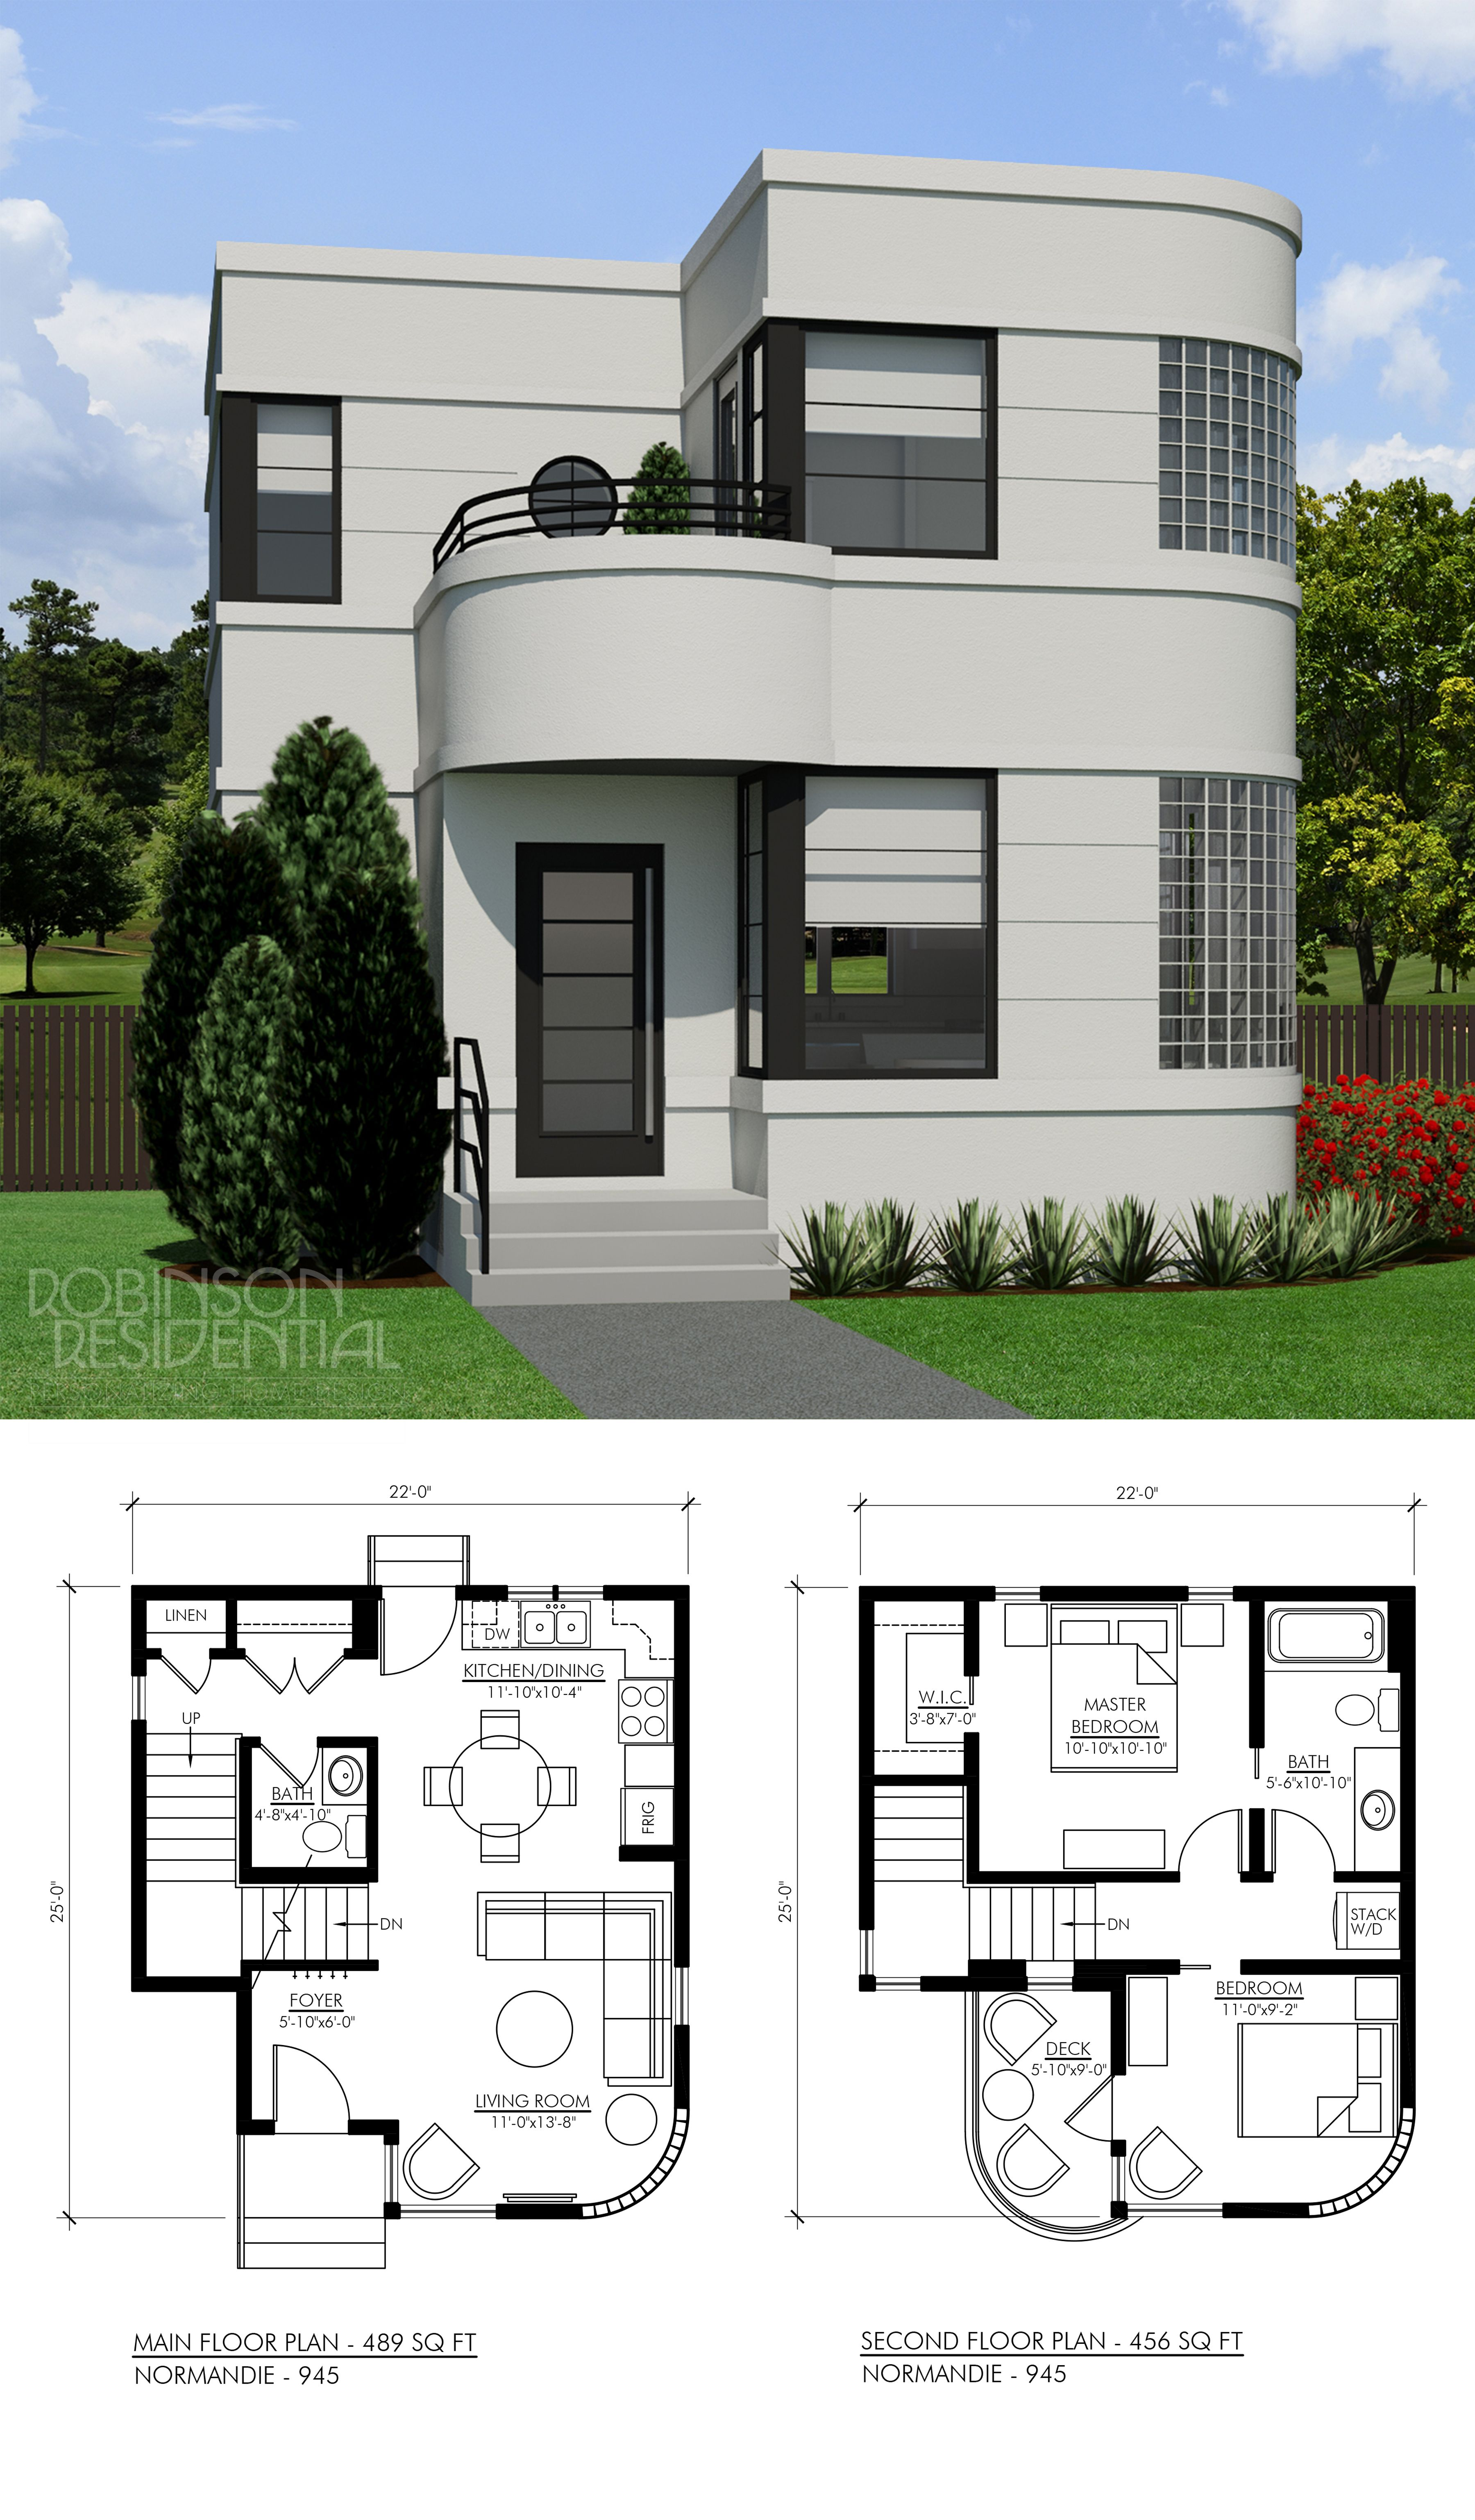 Contemporary Normandie 945 Robinson Plans House Front Design